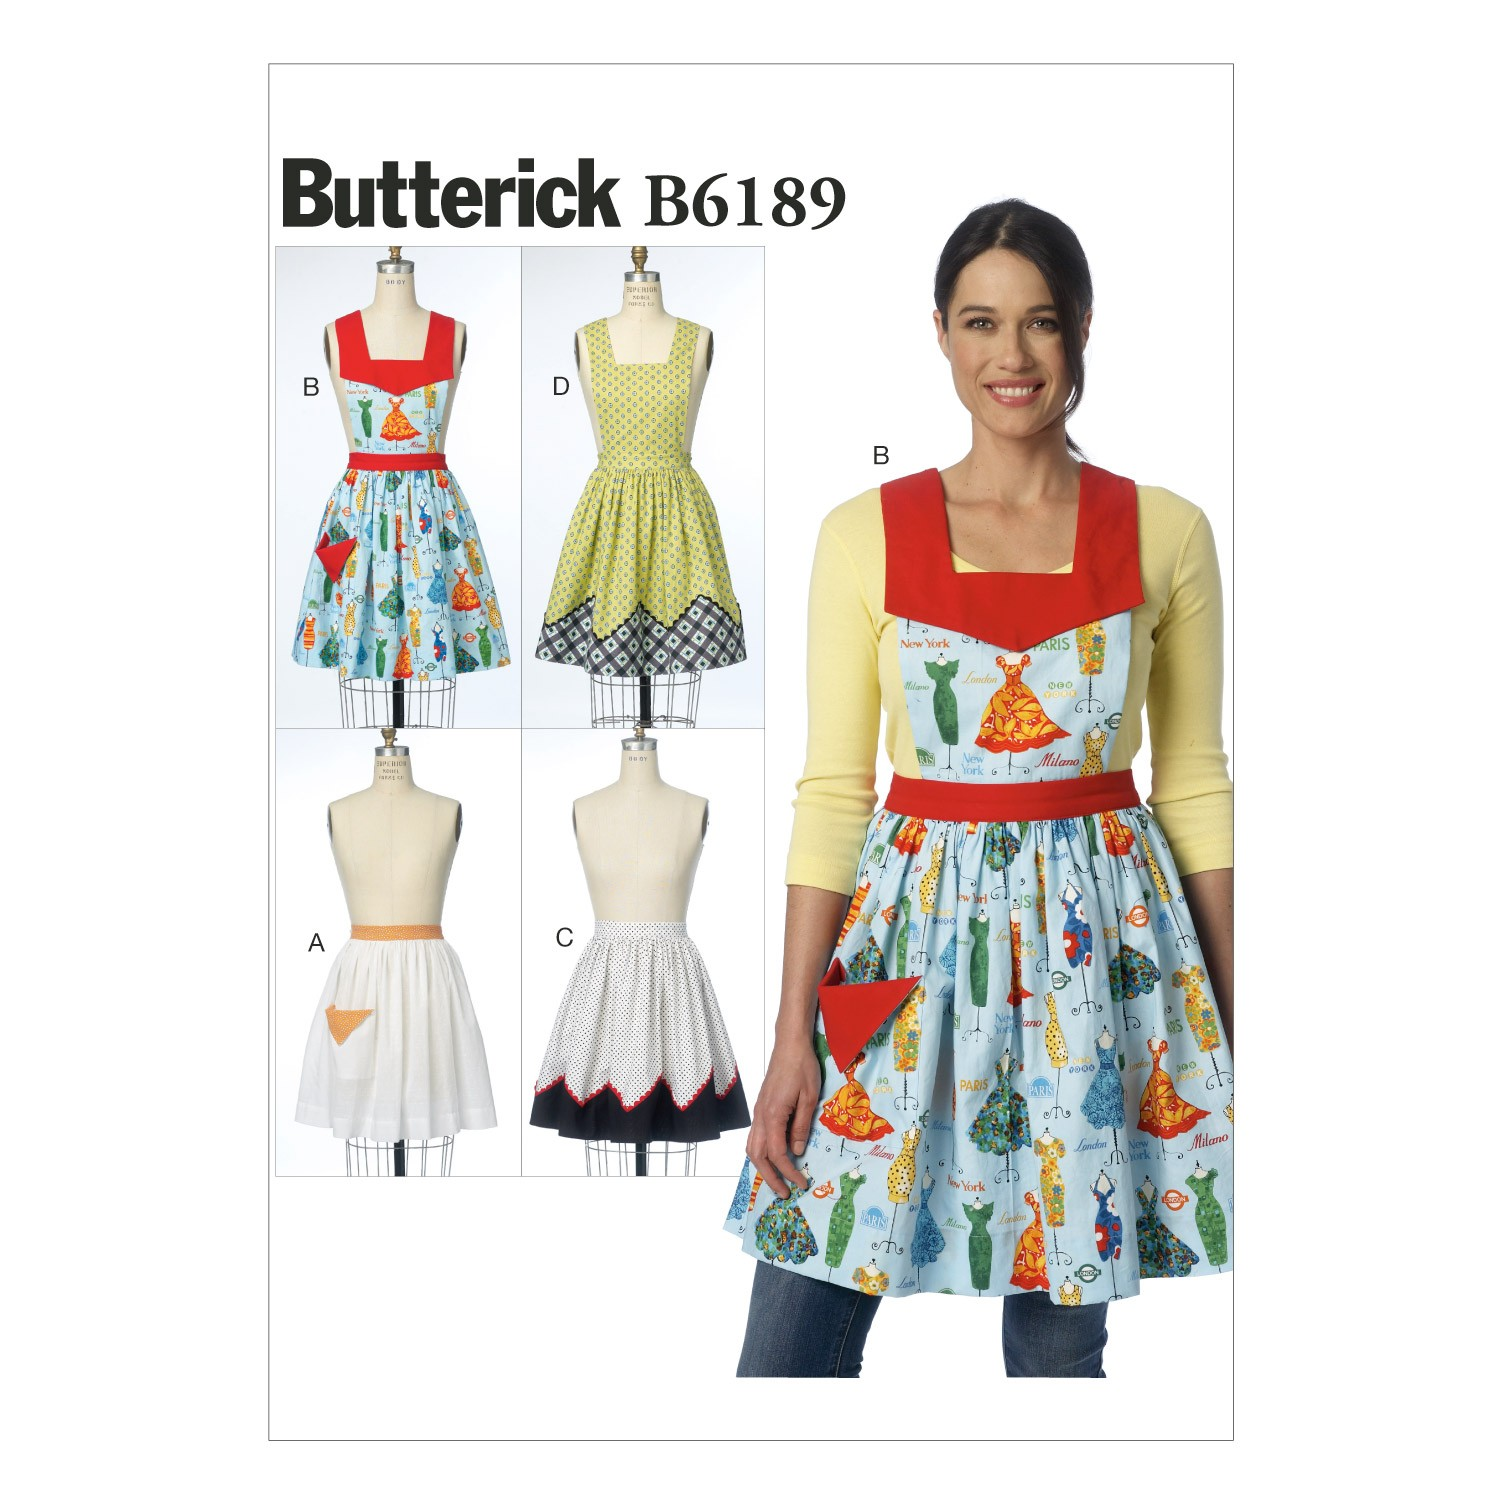 Butterick Sewing Pattern 6189 Misses' Dress Style Apron